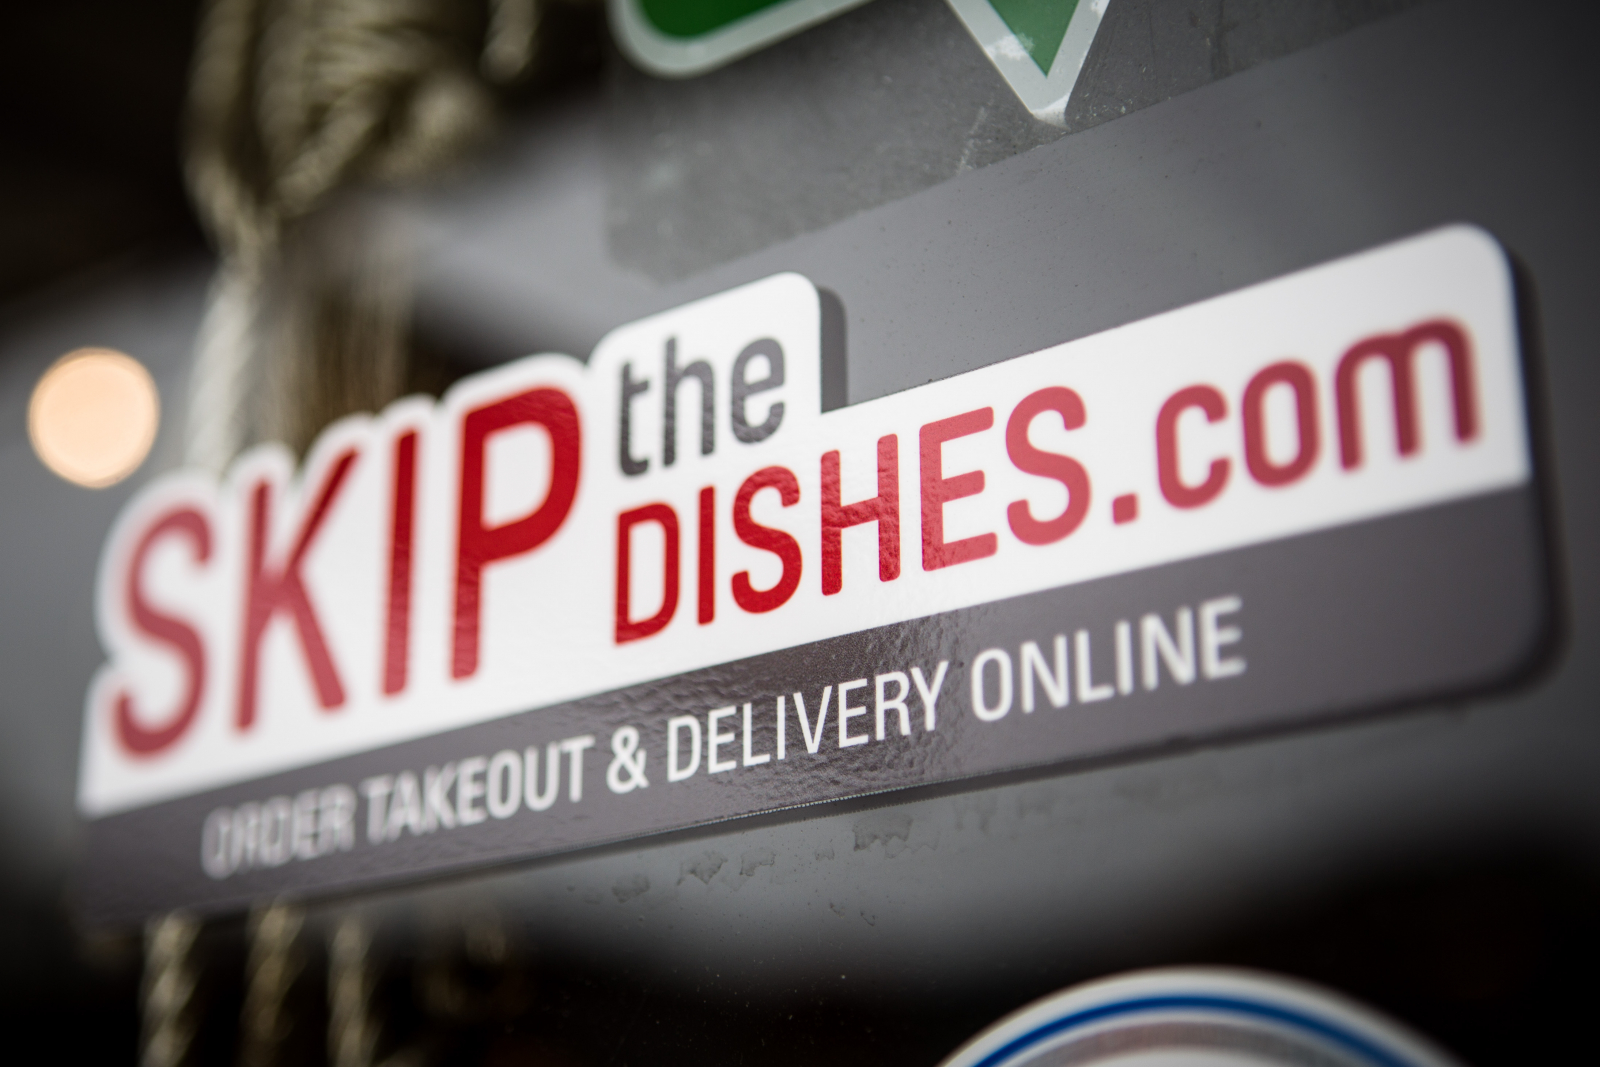 Winnipeg Based Skip The Dishes Has Apologized After Cancelling An Interview  With A Prospective Employee Who Asked About Wages And Benefits.